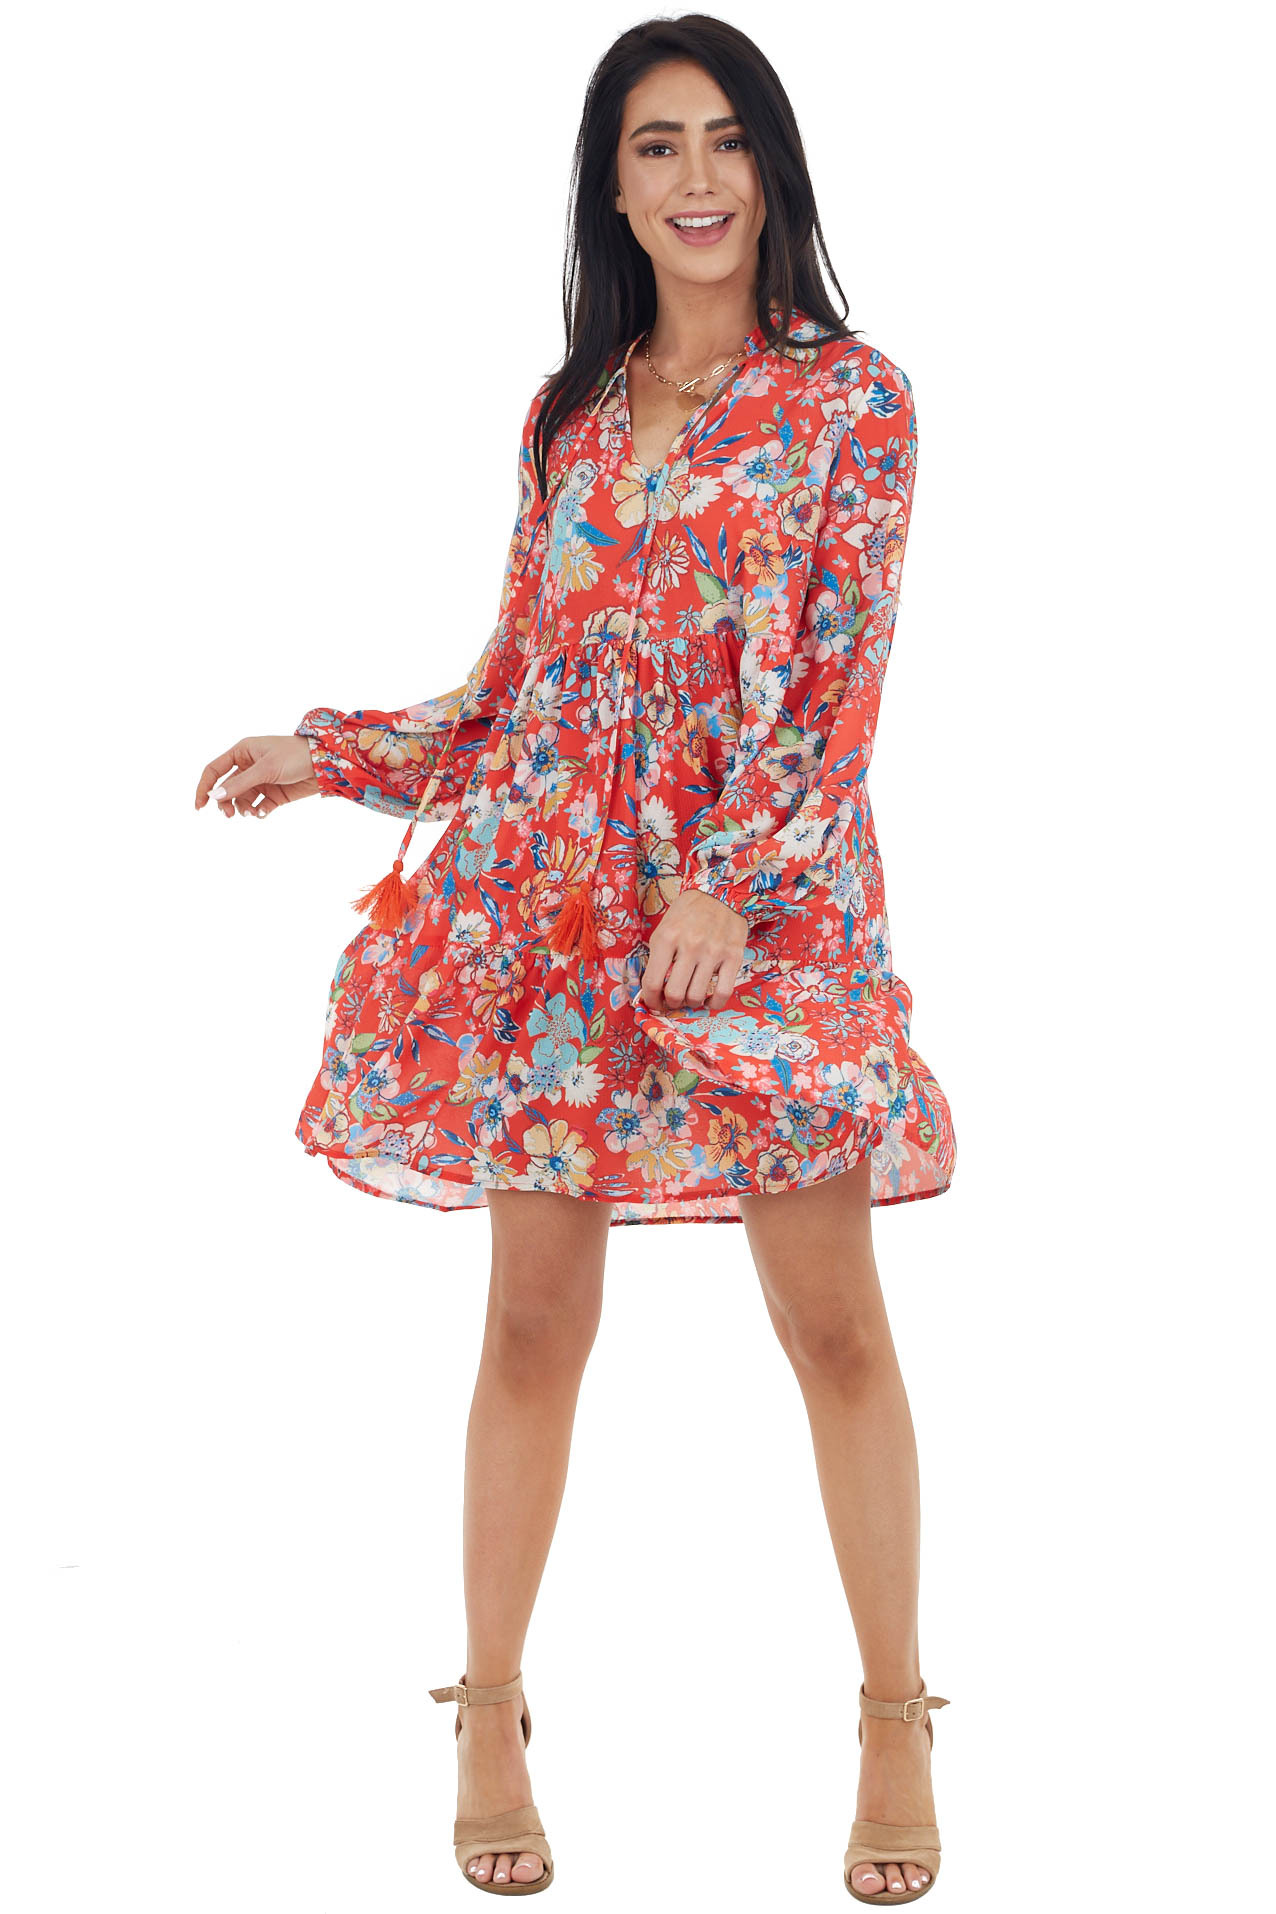 Lipstick Red Floral Print Long Bubble Sleeve Tiered Dress